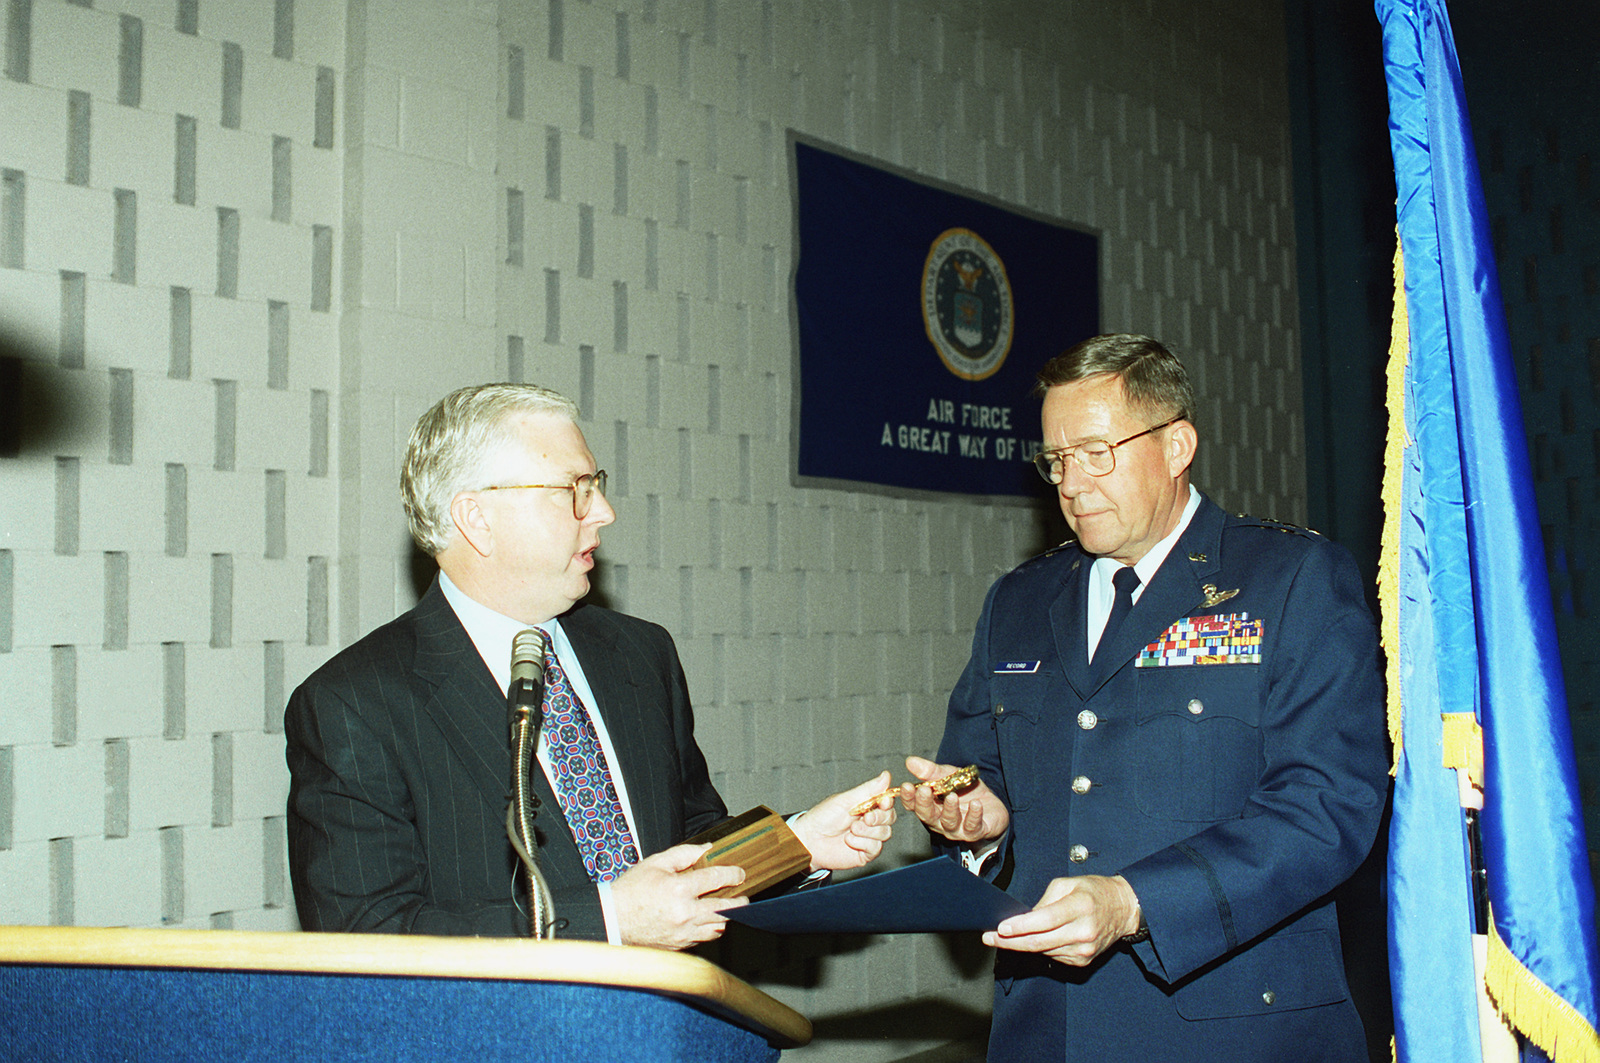 Bobby Burns, Mayor of Midland, Texas, presents LT. GEN. James Record, 12th Air Force Commander, with the key to the city of Midland. The Mayor also dedicated an official day in the general's honor